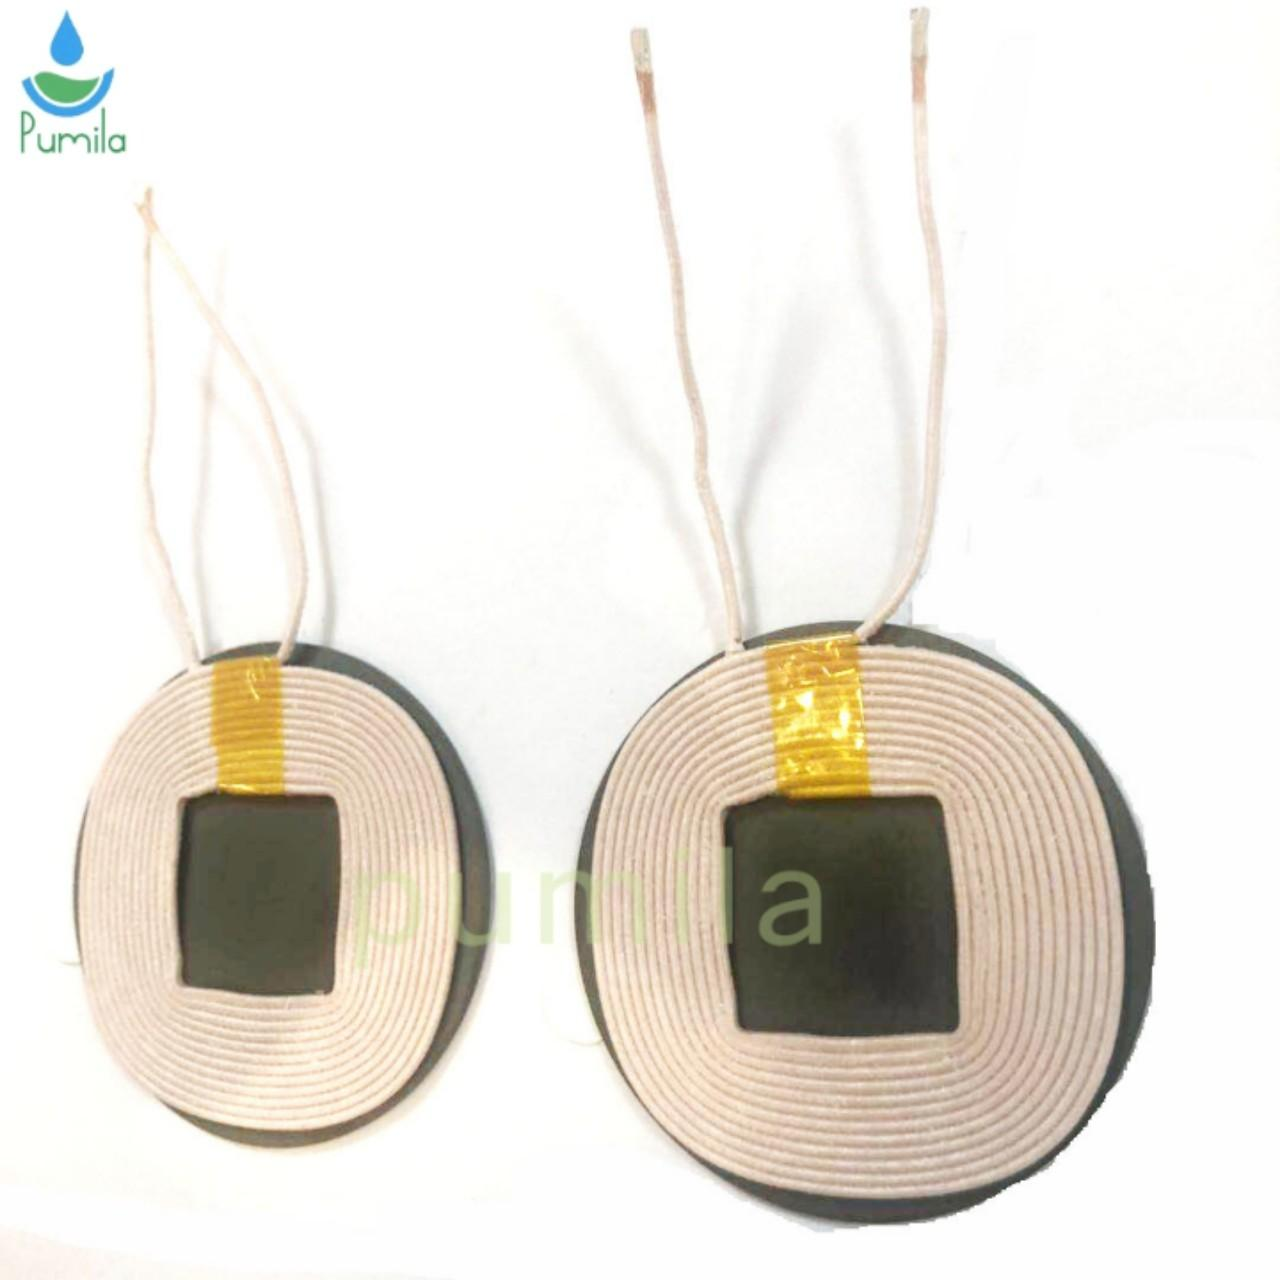 A12 battery charging coil wireless charger transmitter electric coil ustc wire for sale